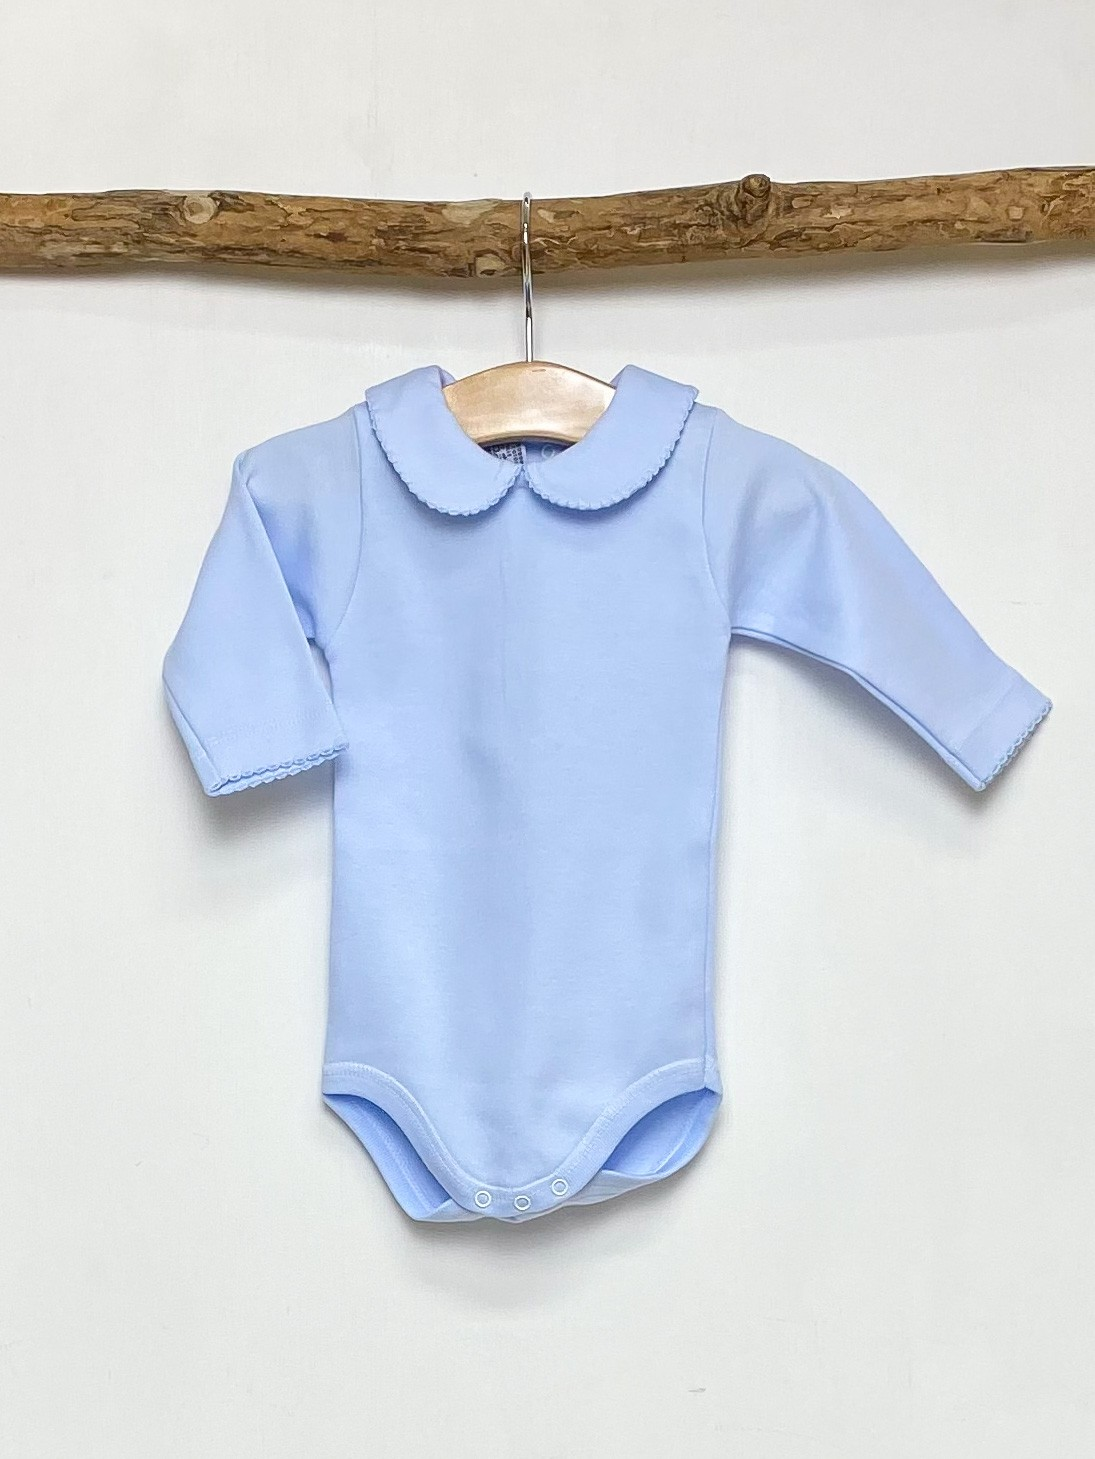 Blue Peter Pan Collar Bodysuit